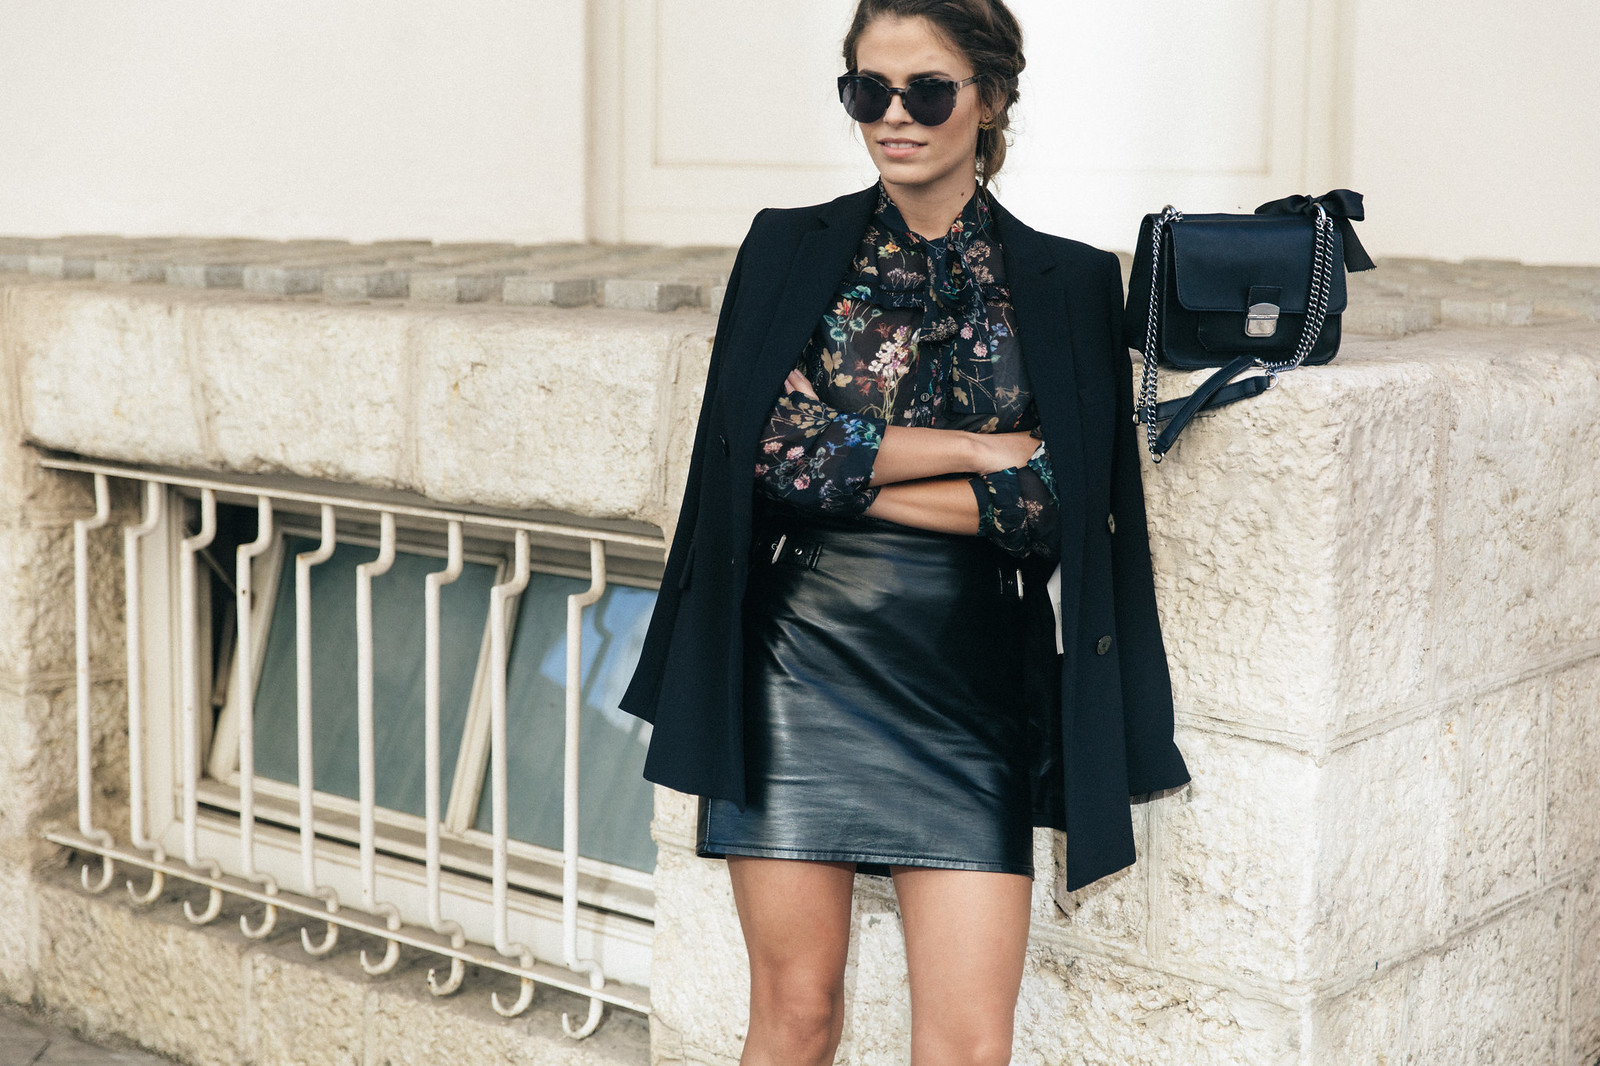 Jessie Chanes Seams for a desire - Buylevard Flowered Shirt Faux Leather Skirt Black Blazer-4